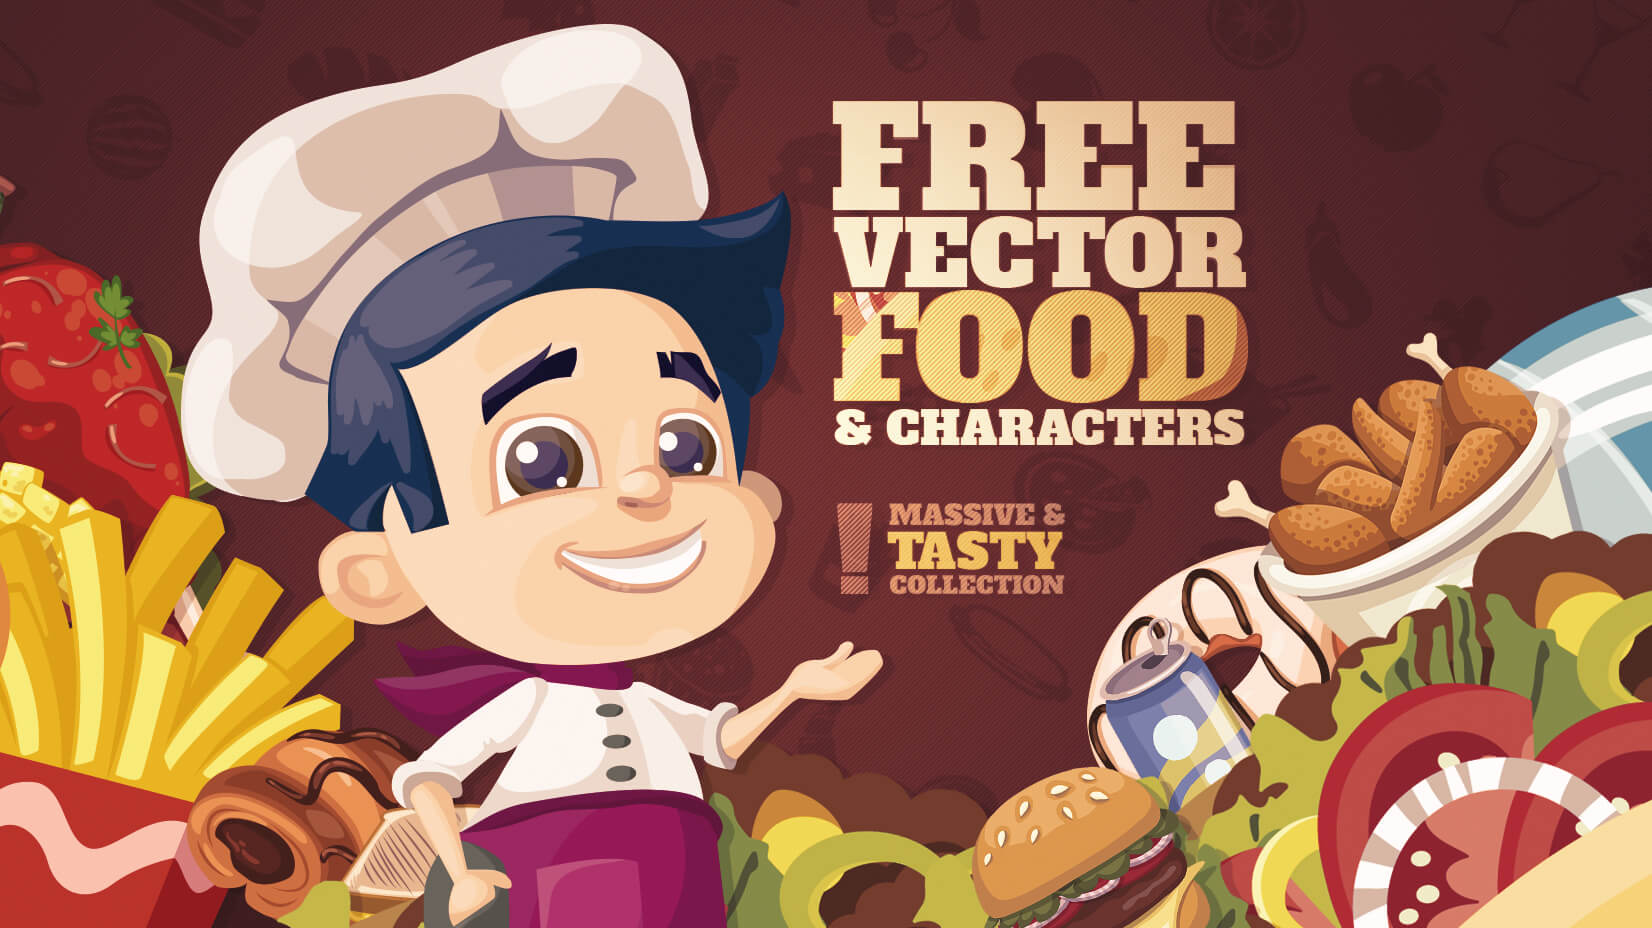 100 Free Food Vector Graphics And Characters For Tasty Projects Years Ago Ai How To Edit This Commercial Use With Here Comes A Big Plate Of Yummy Vectors Cooks Chefs Cartoon Delivery Boys Girls Logos Flat Icon Sets More